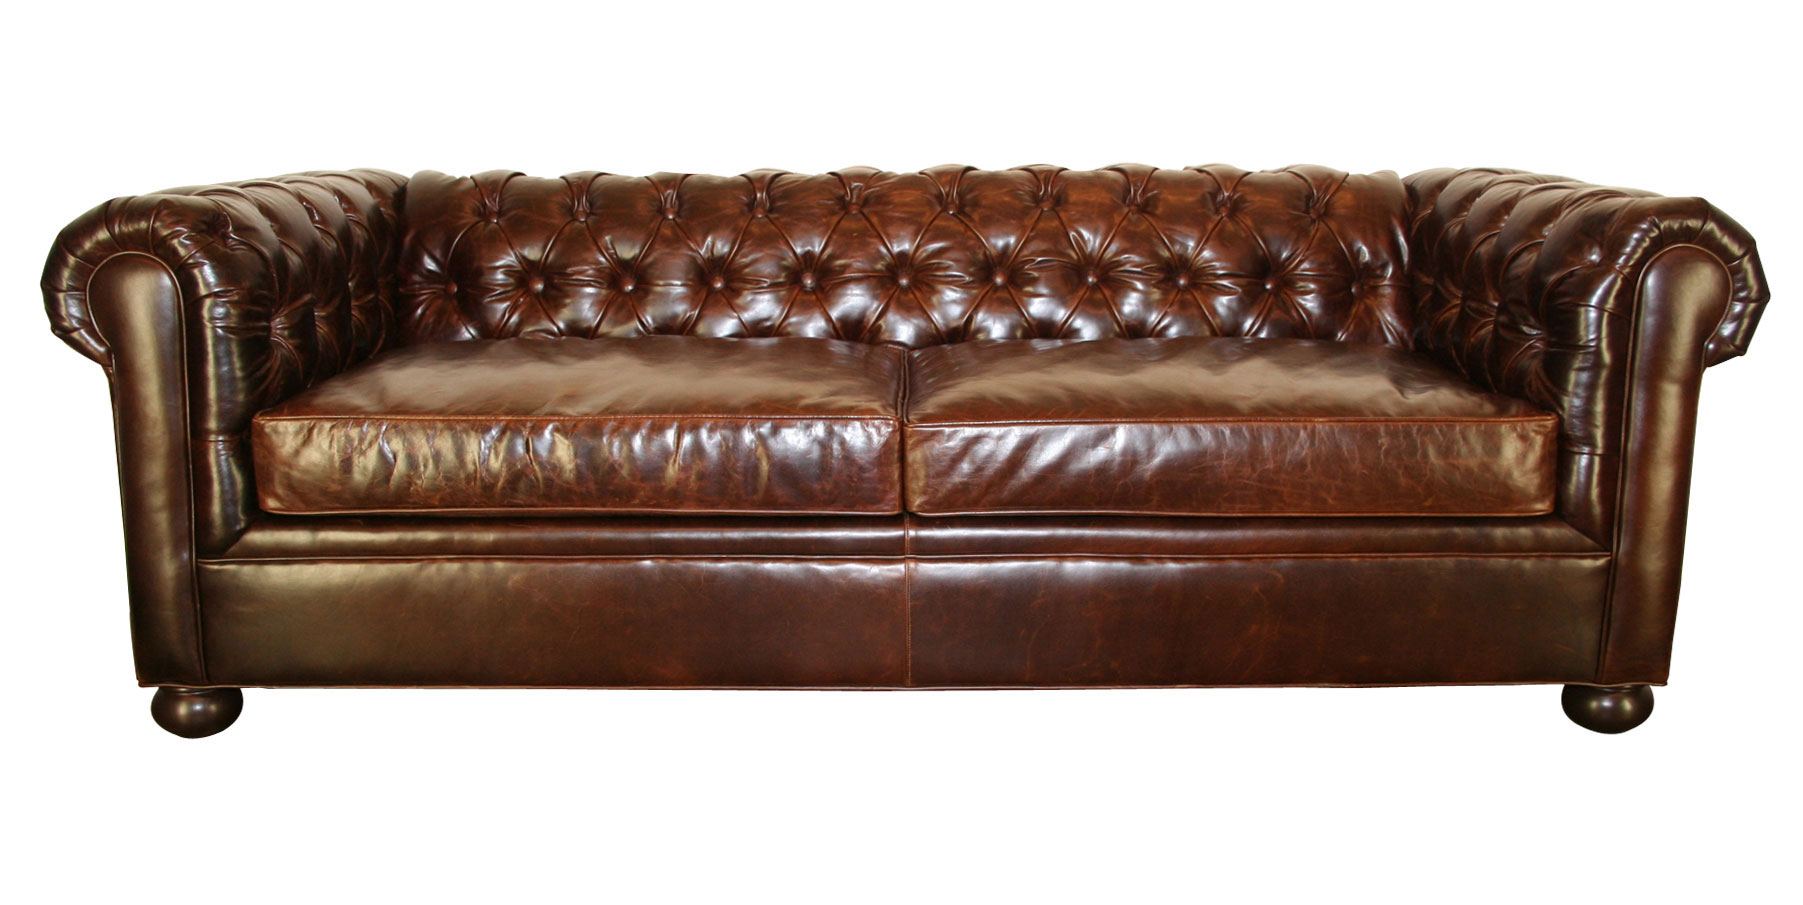 tufted club sofa recliner 2 seater covers leather chesterfield living room furniture